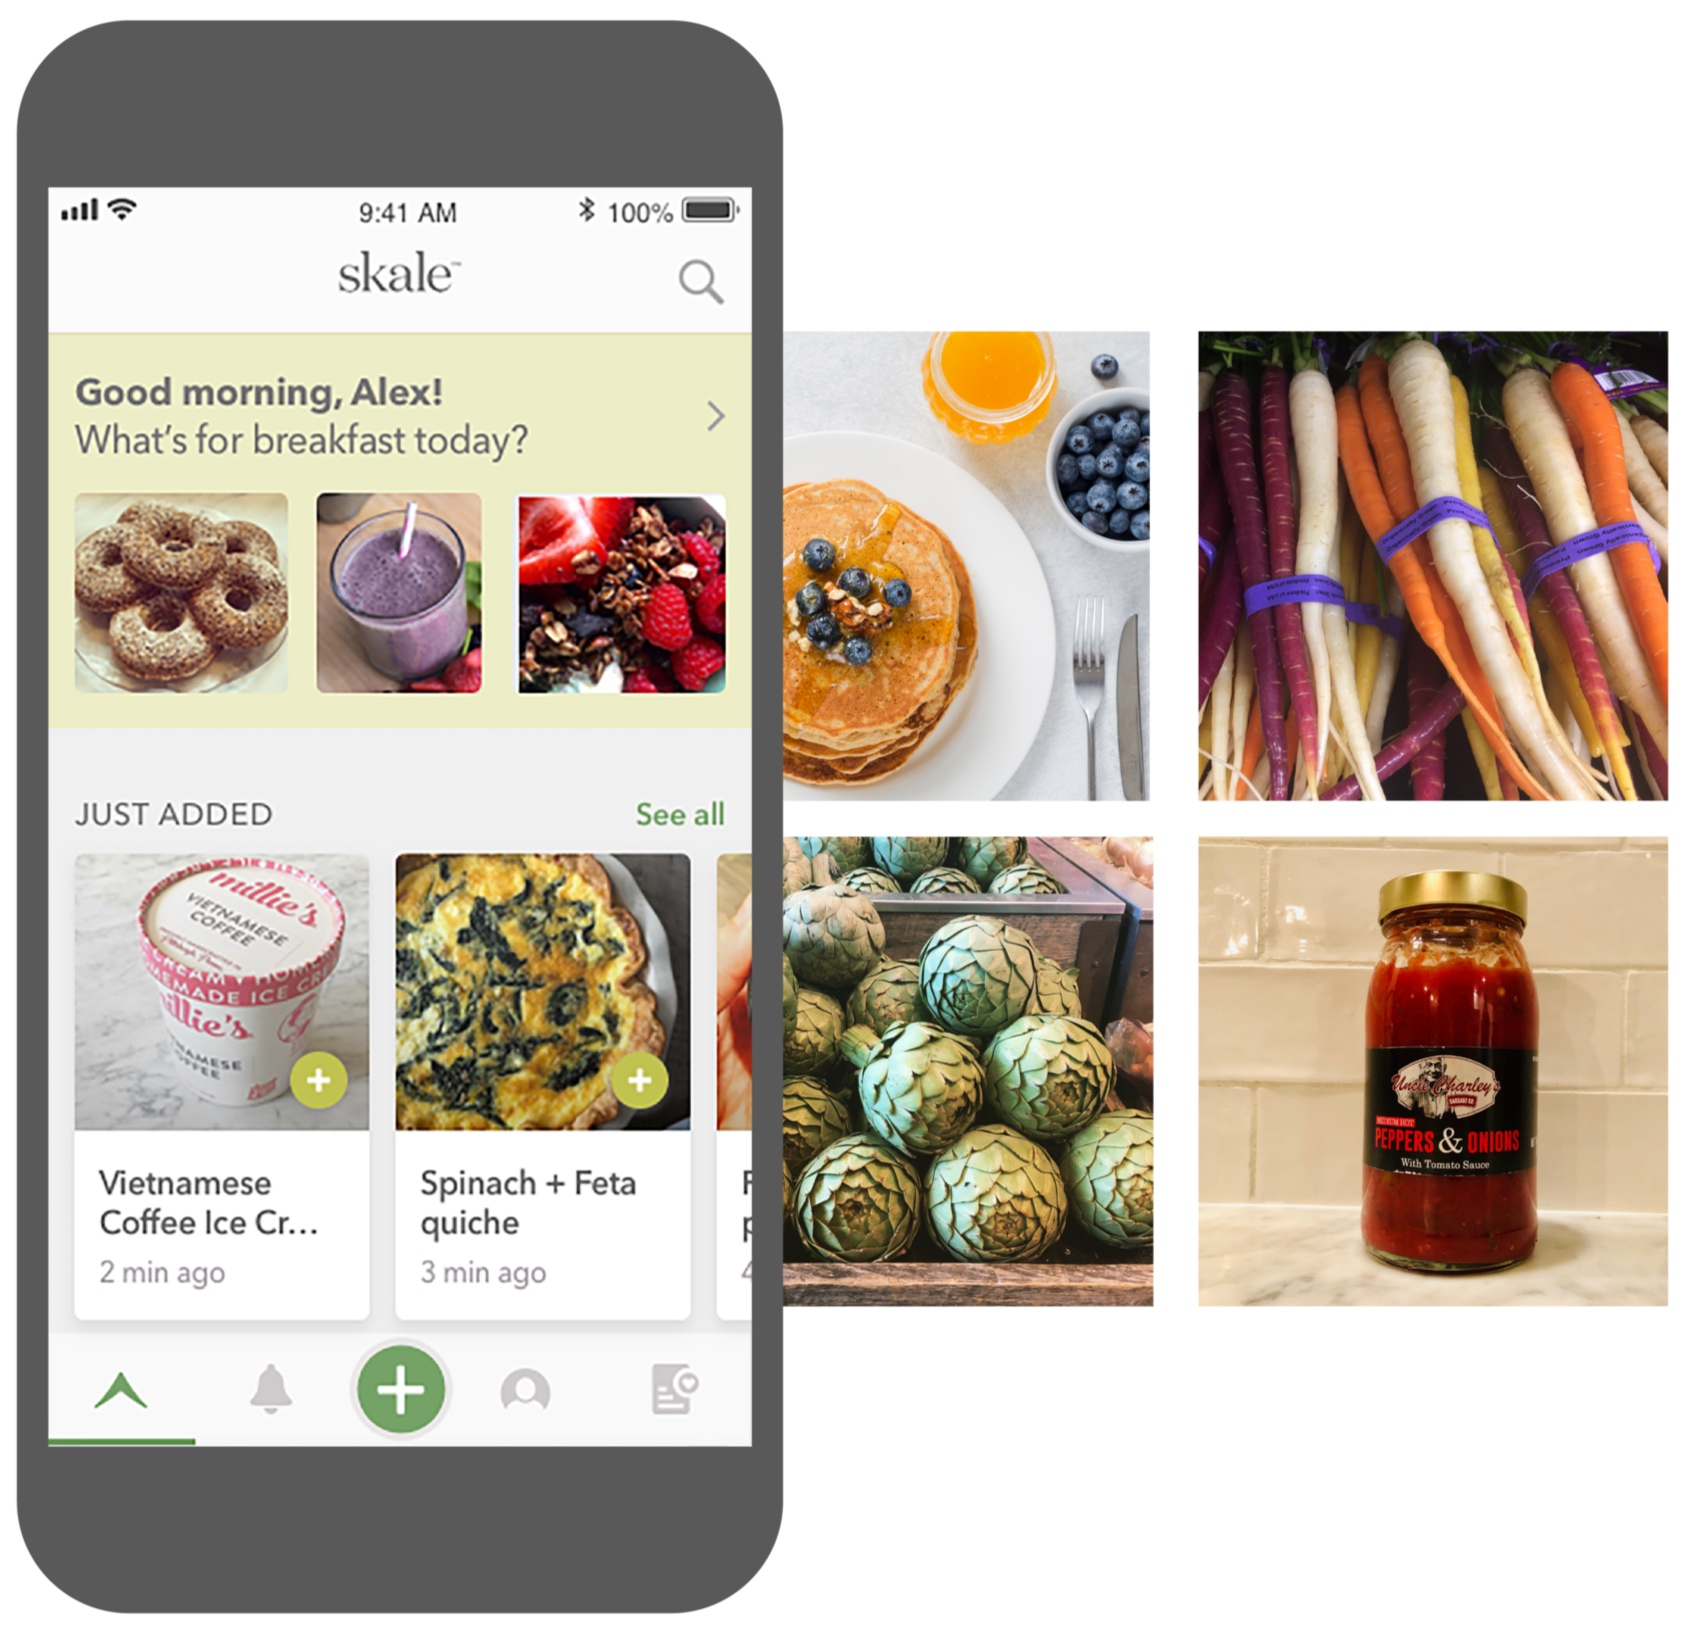 Discover - products and dishes to inspire your tastes.